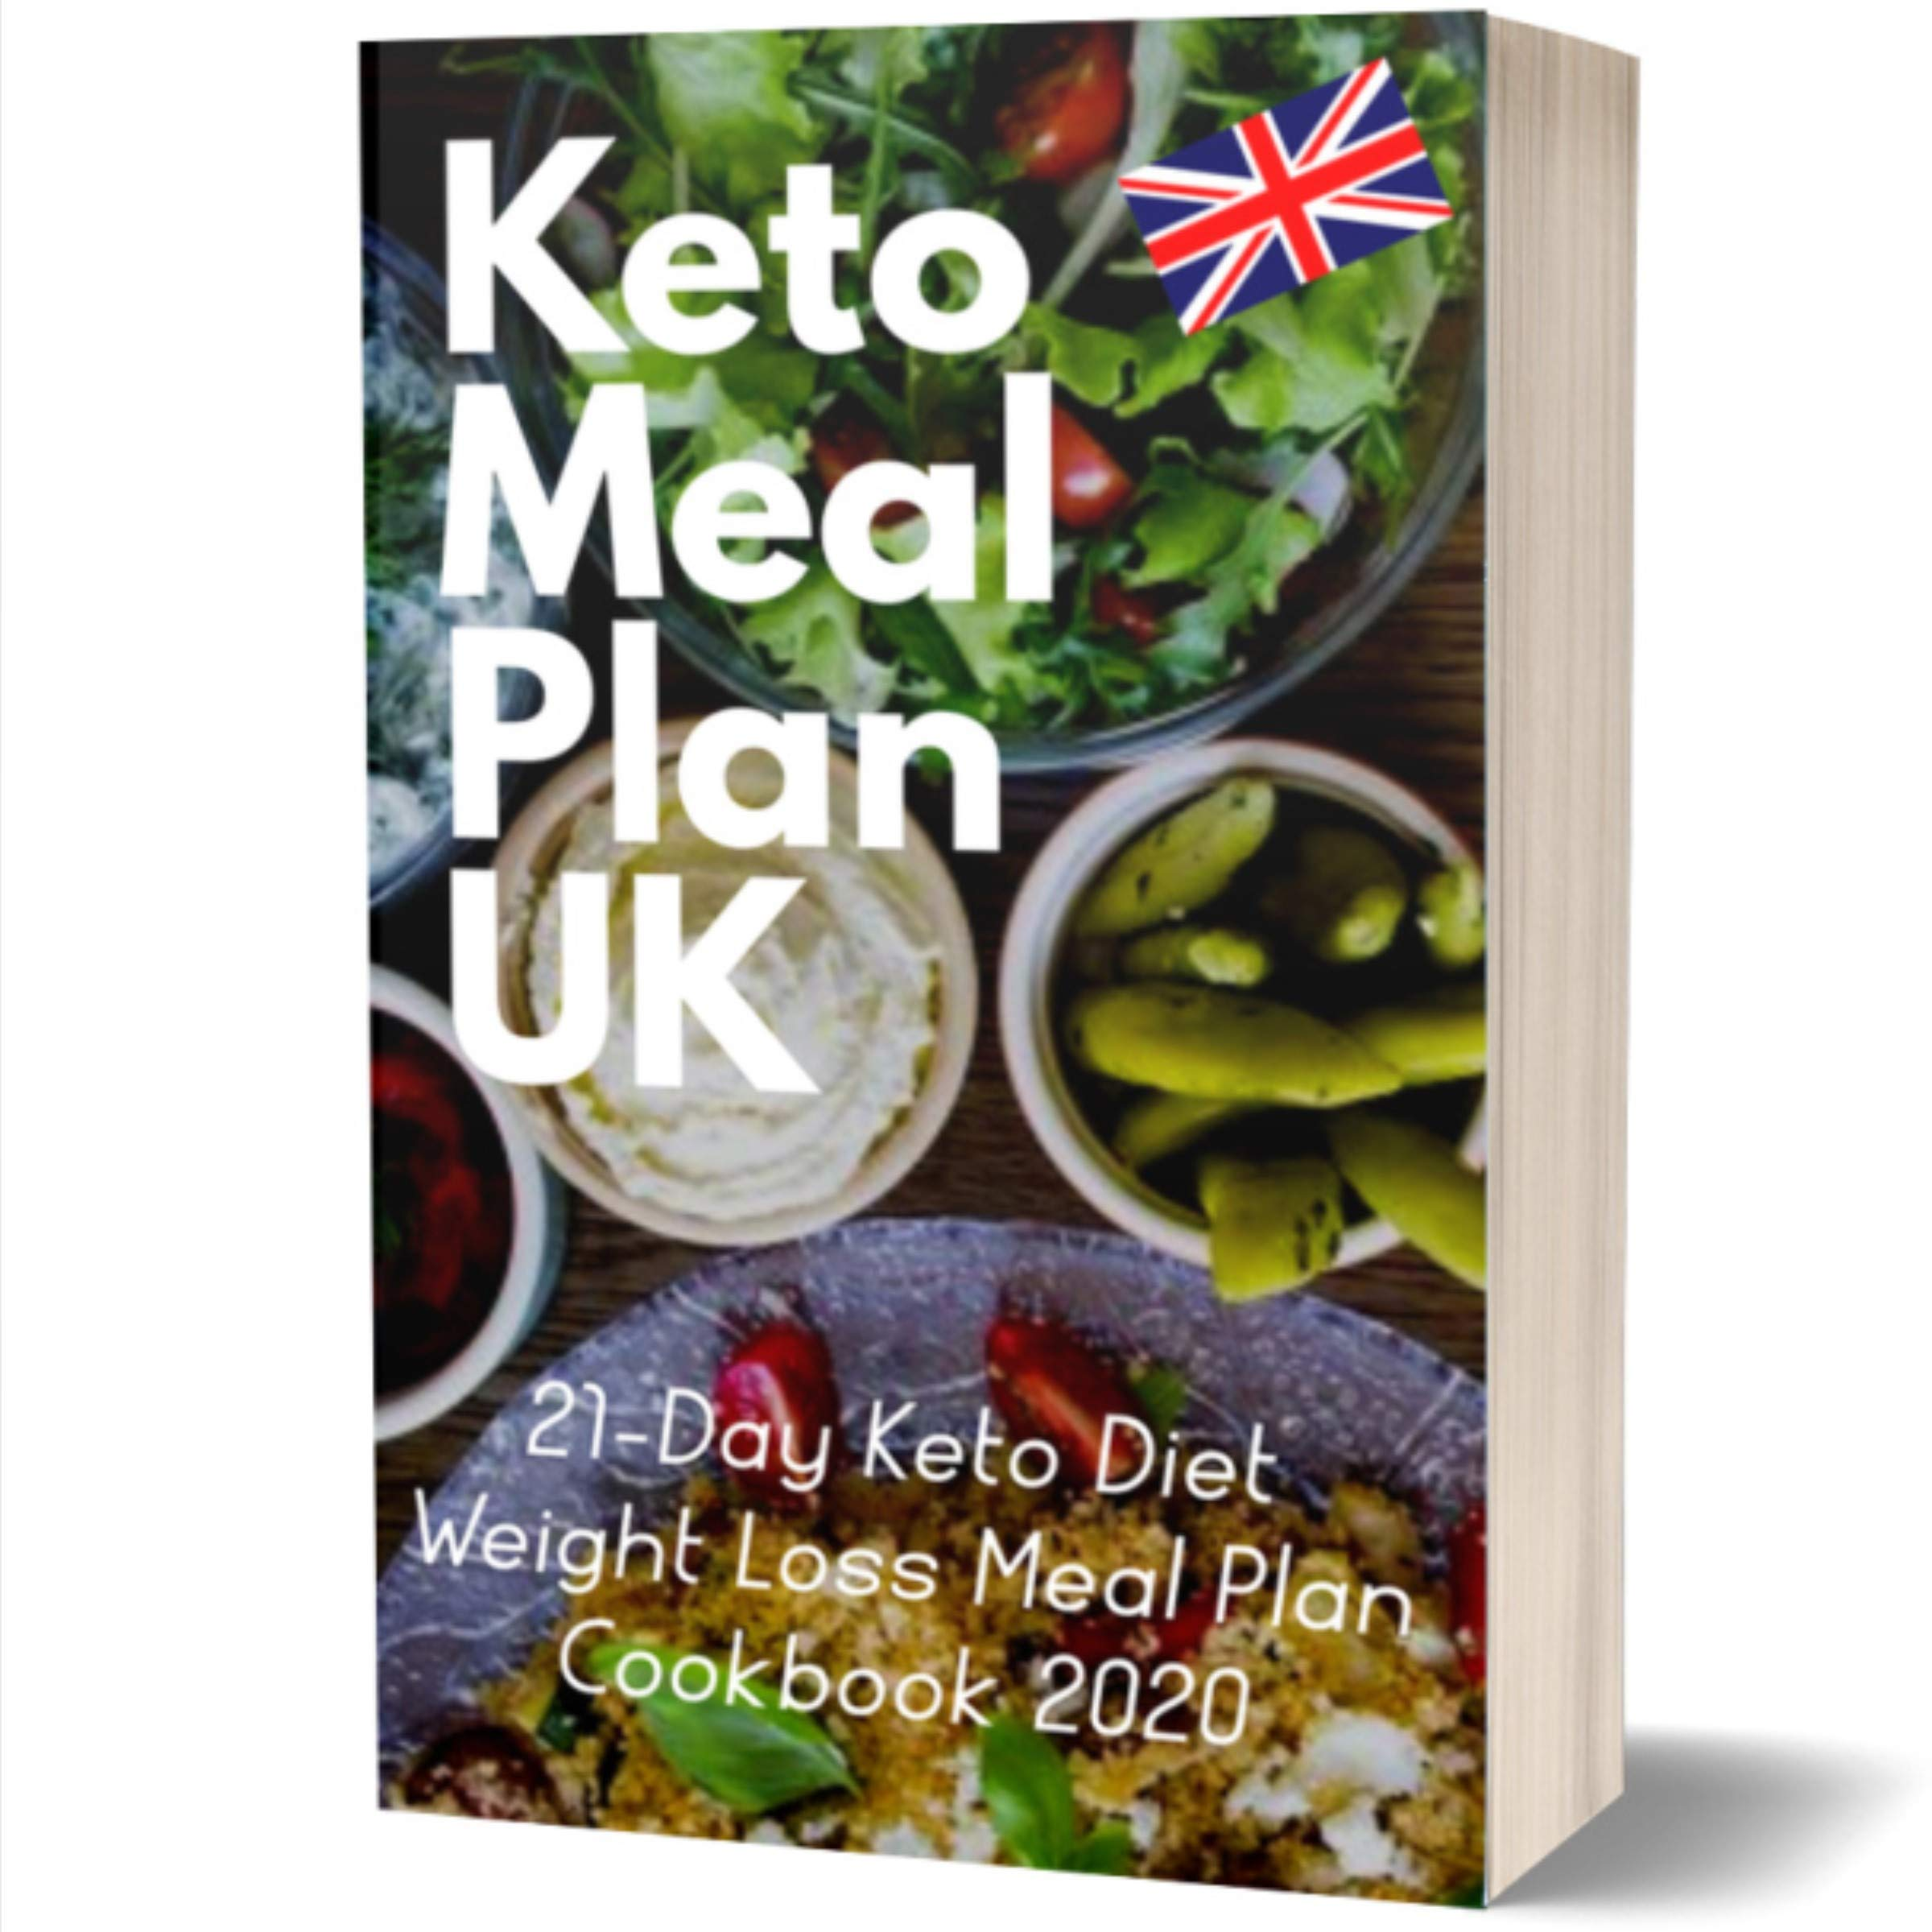 Keto Meal Plan Uk 21 Day Keto Diet Weight Loss Meal Plan Cookbook 2020 By Alba Cartey